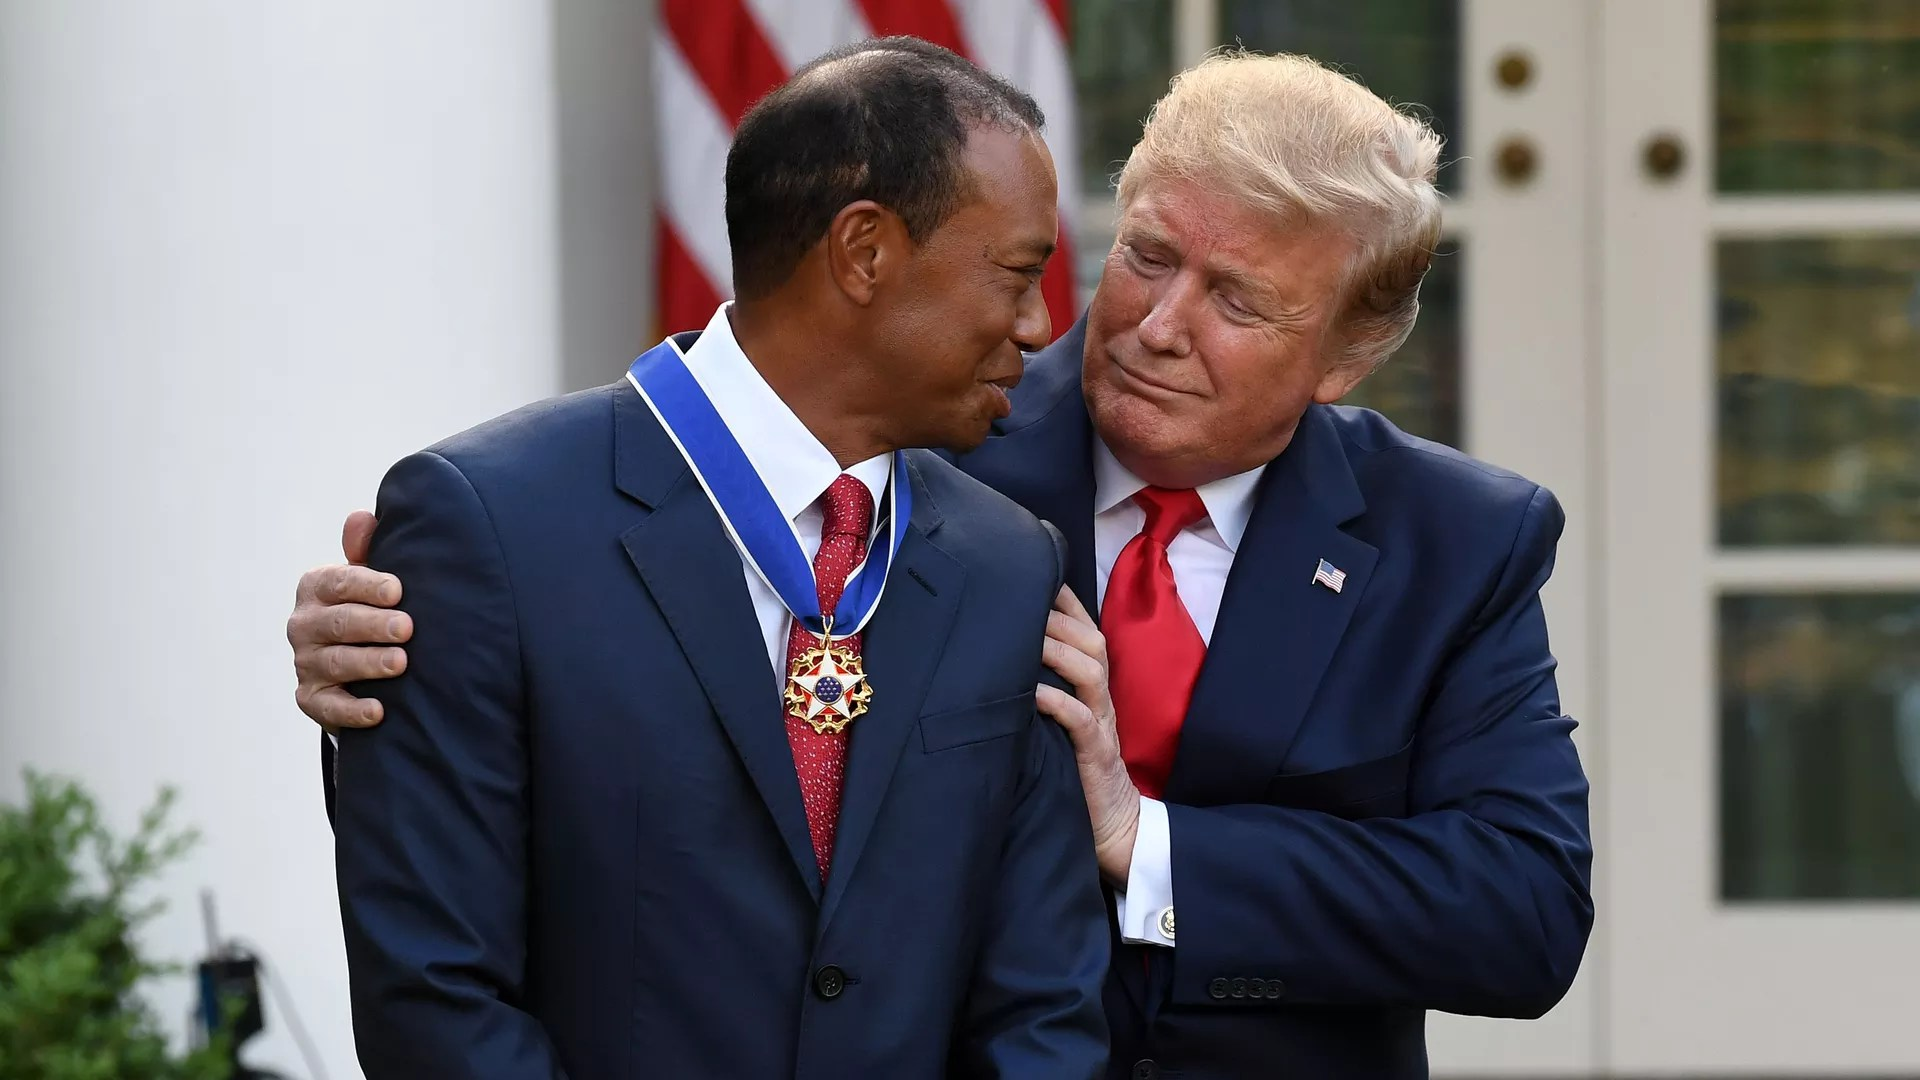 President Donald Trump presents US golfer Tiger Woods with the Presidential Medal of Freedom during a ceremony in the Rose Garden of the White House in Washington, DC, Monday.